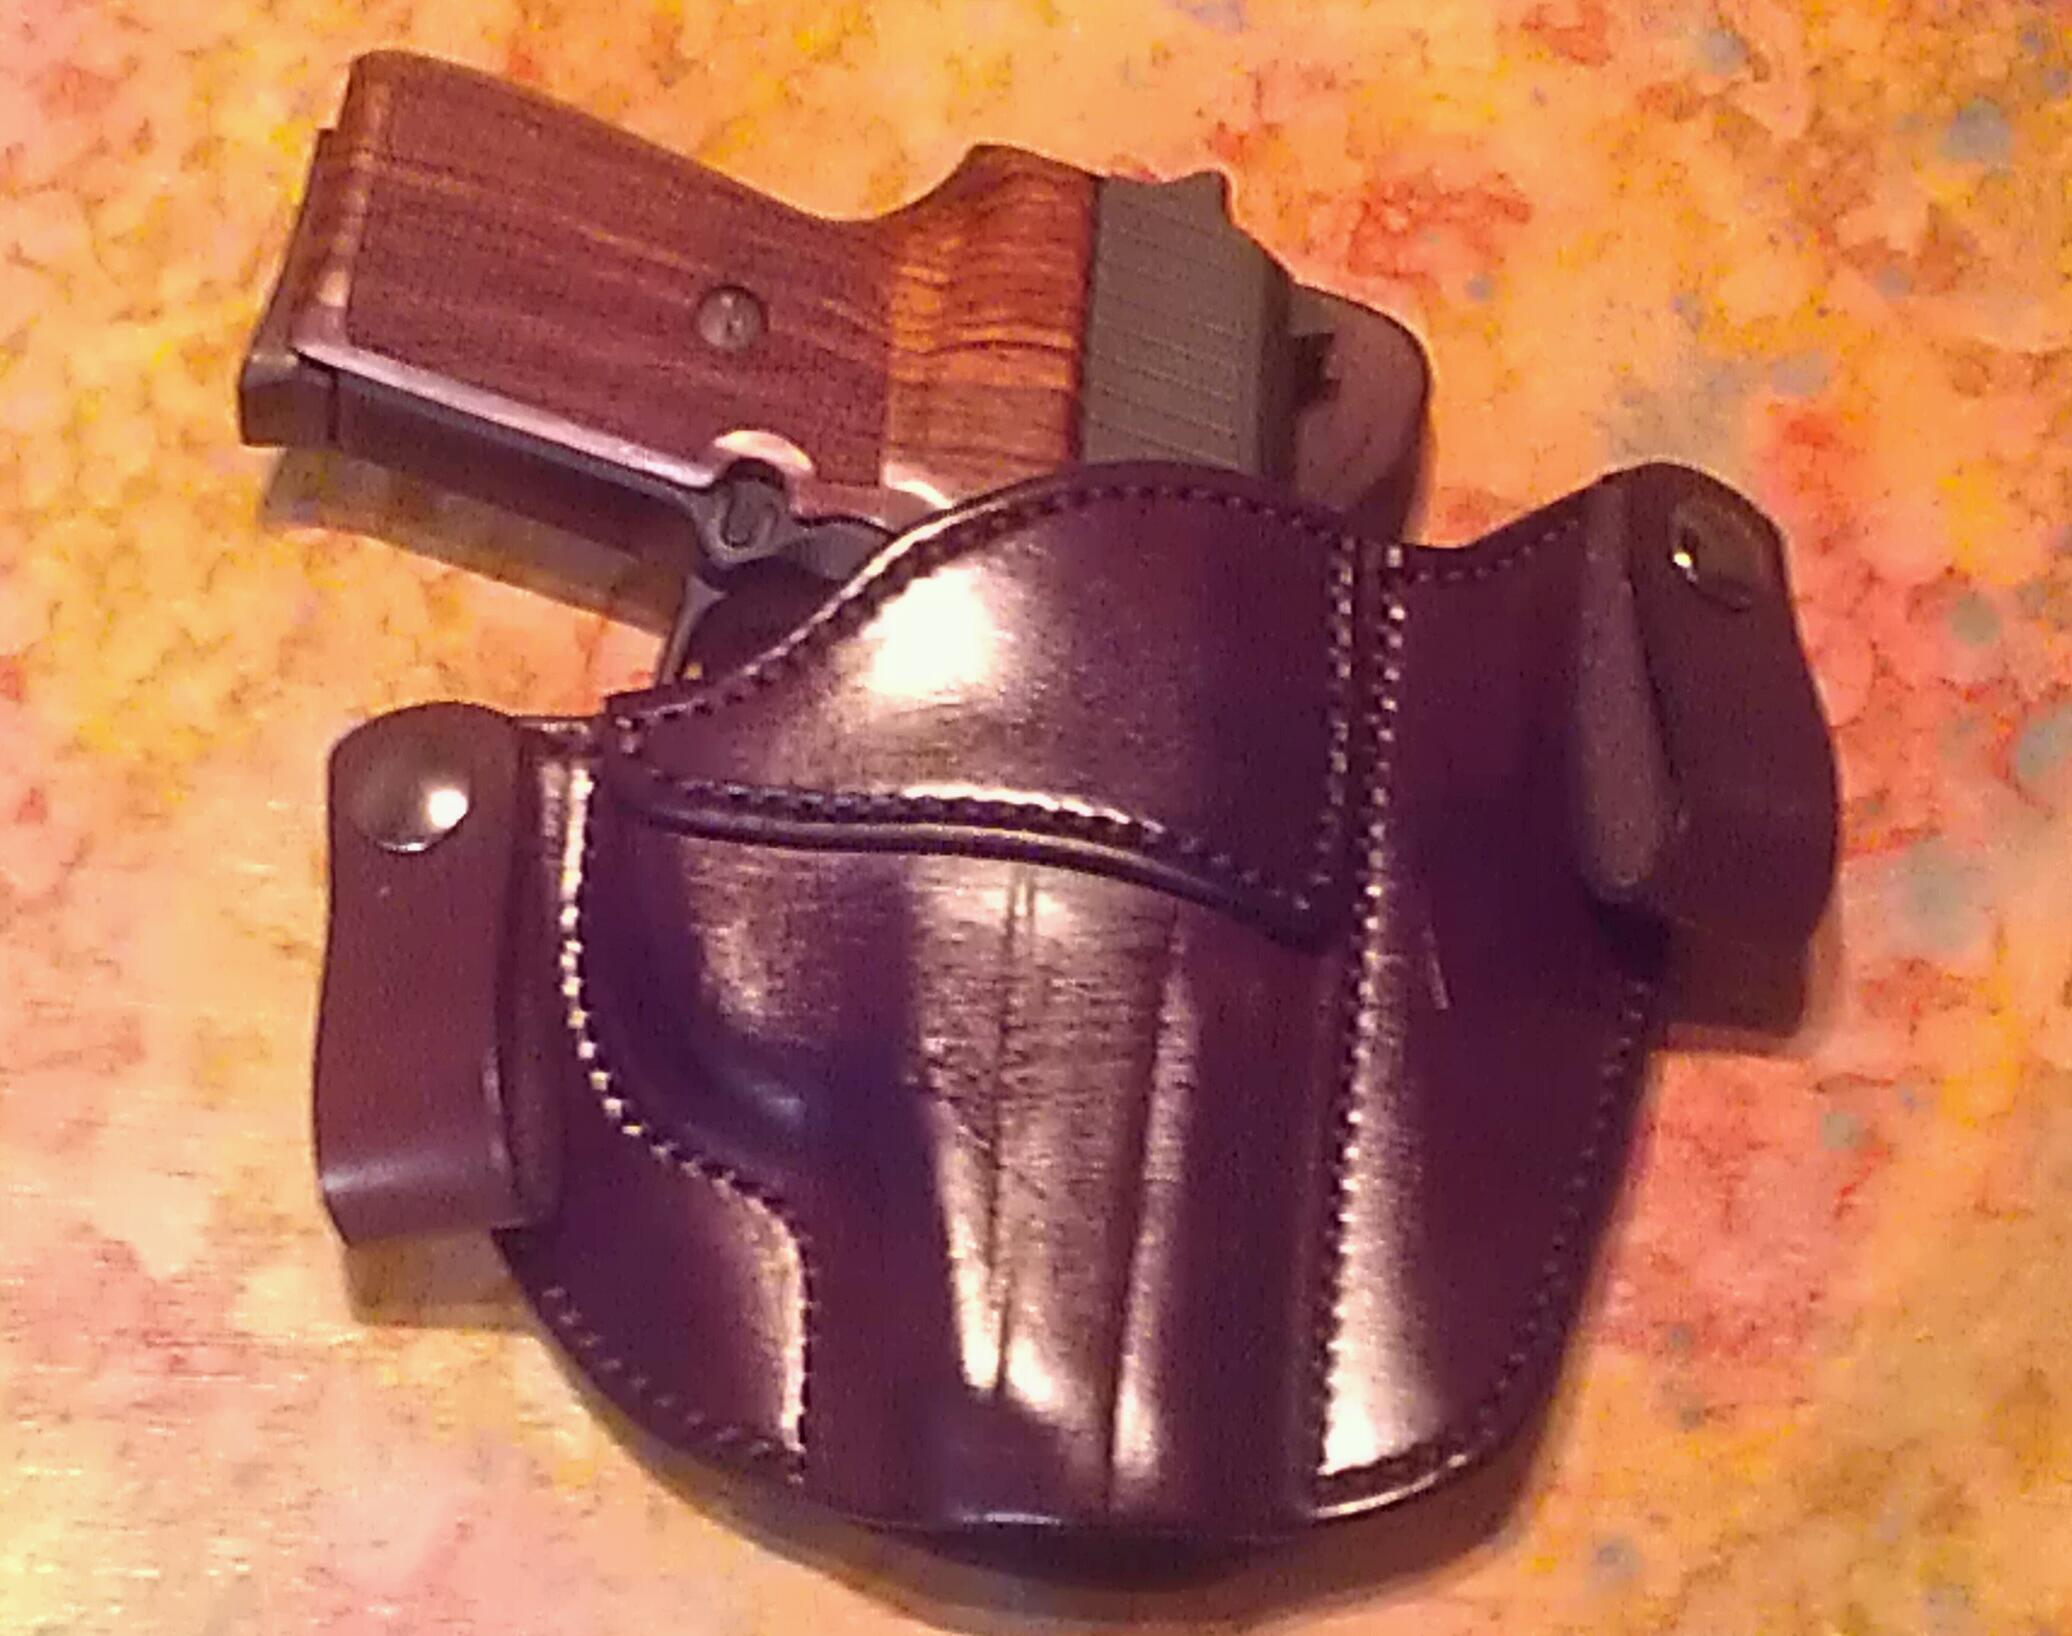 New holster from Soteria Leather for Sig P239-imag0171-1.jpg